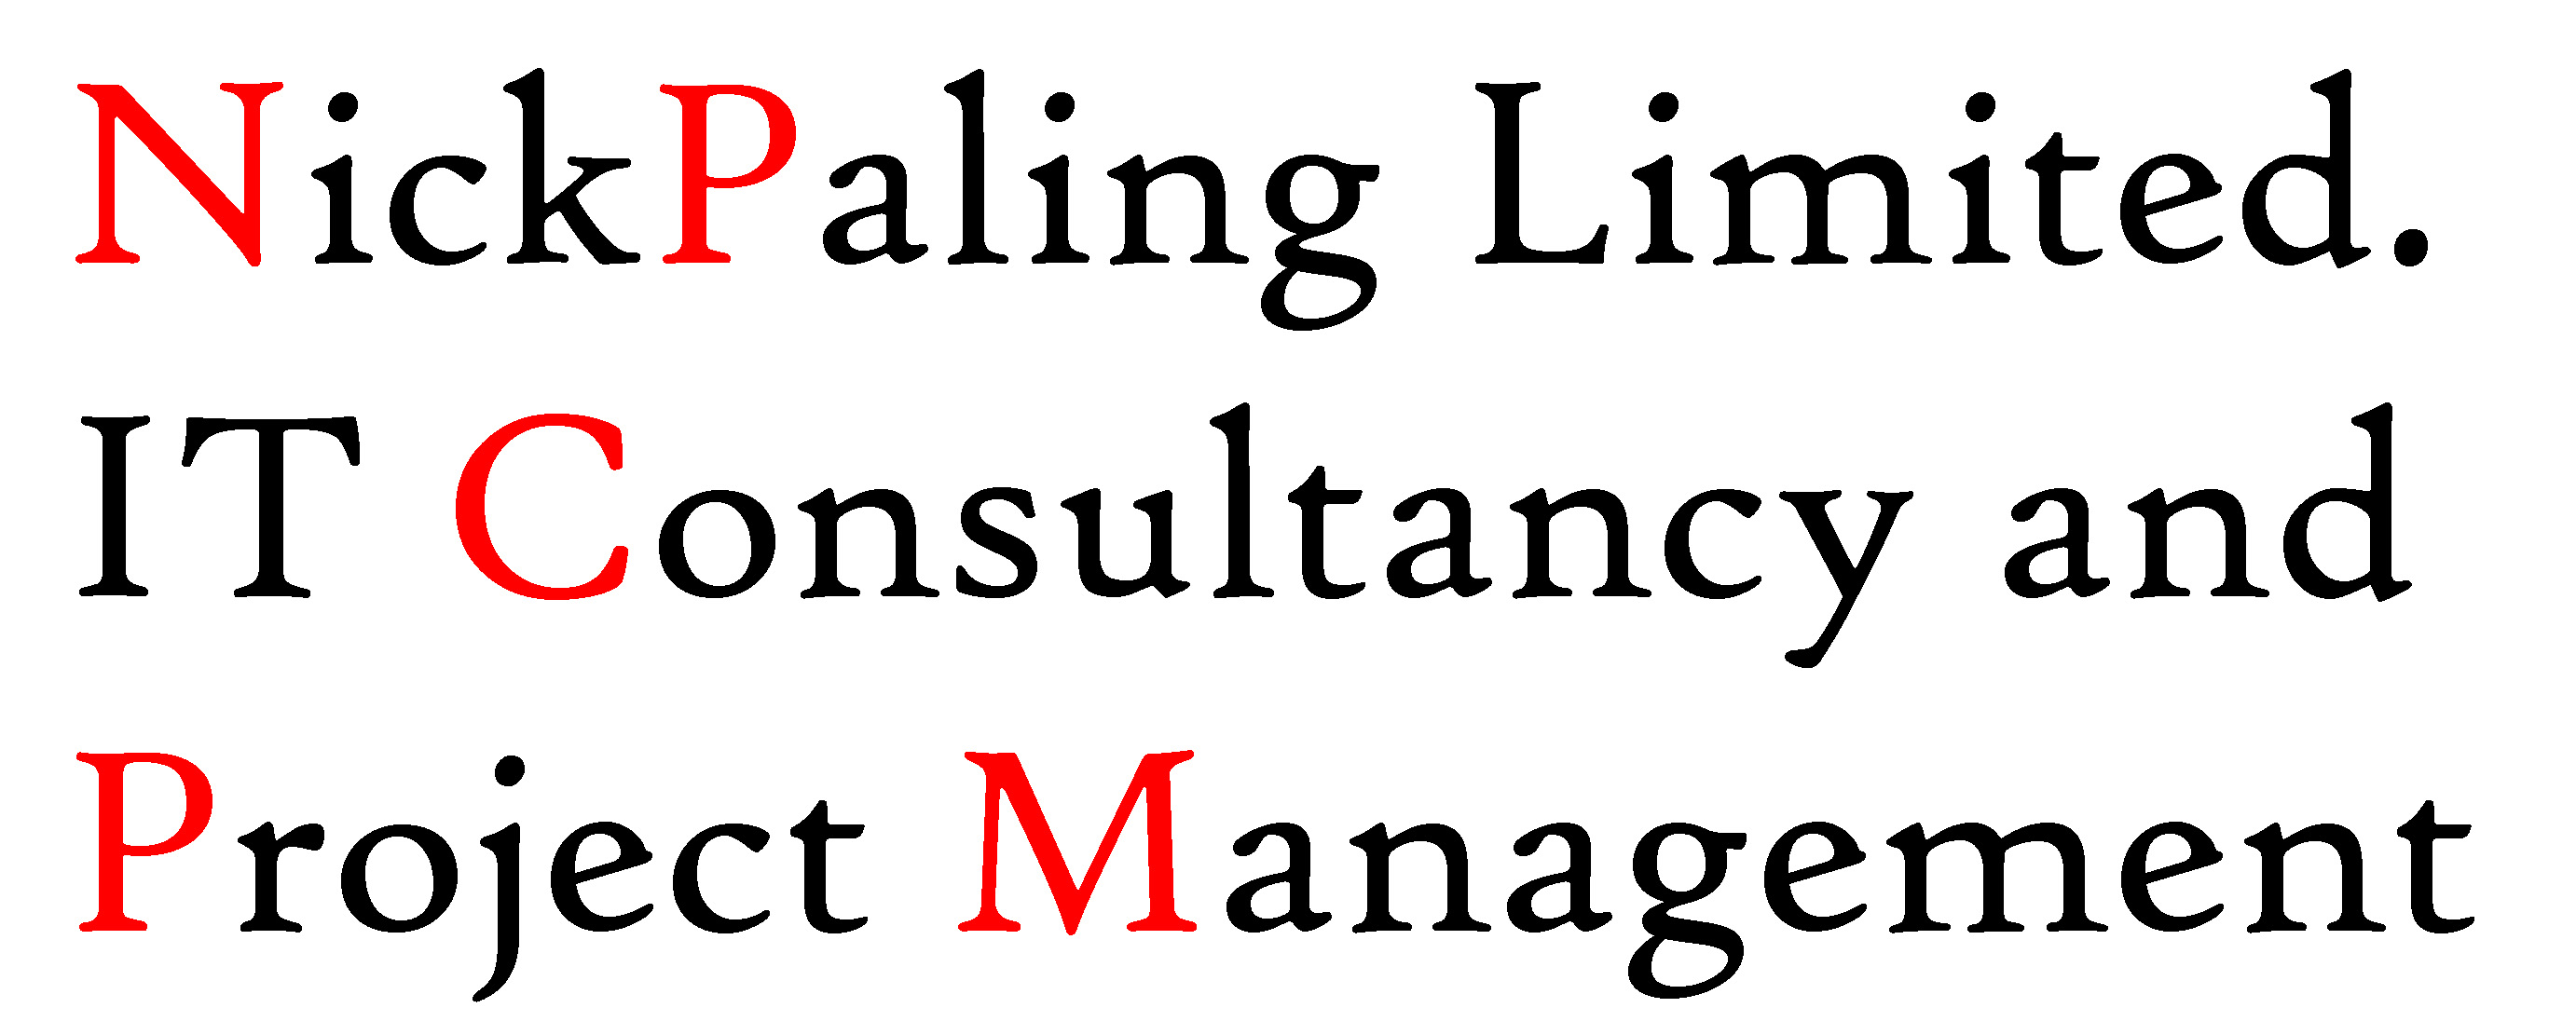 NickPaling Ltd, IT Consultancy and Project Management